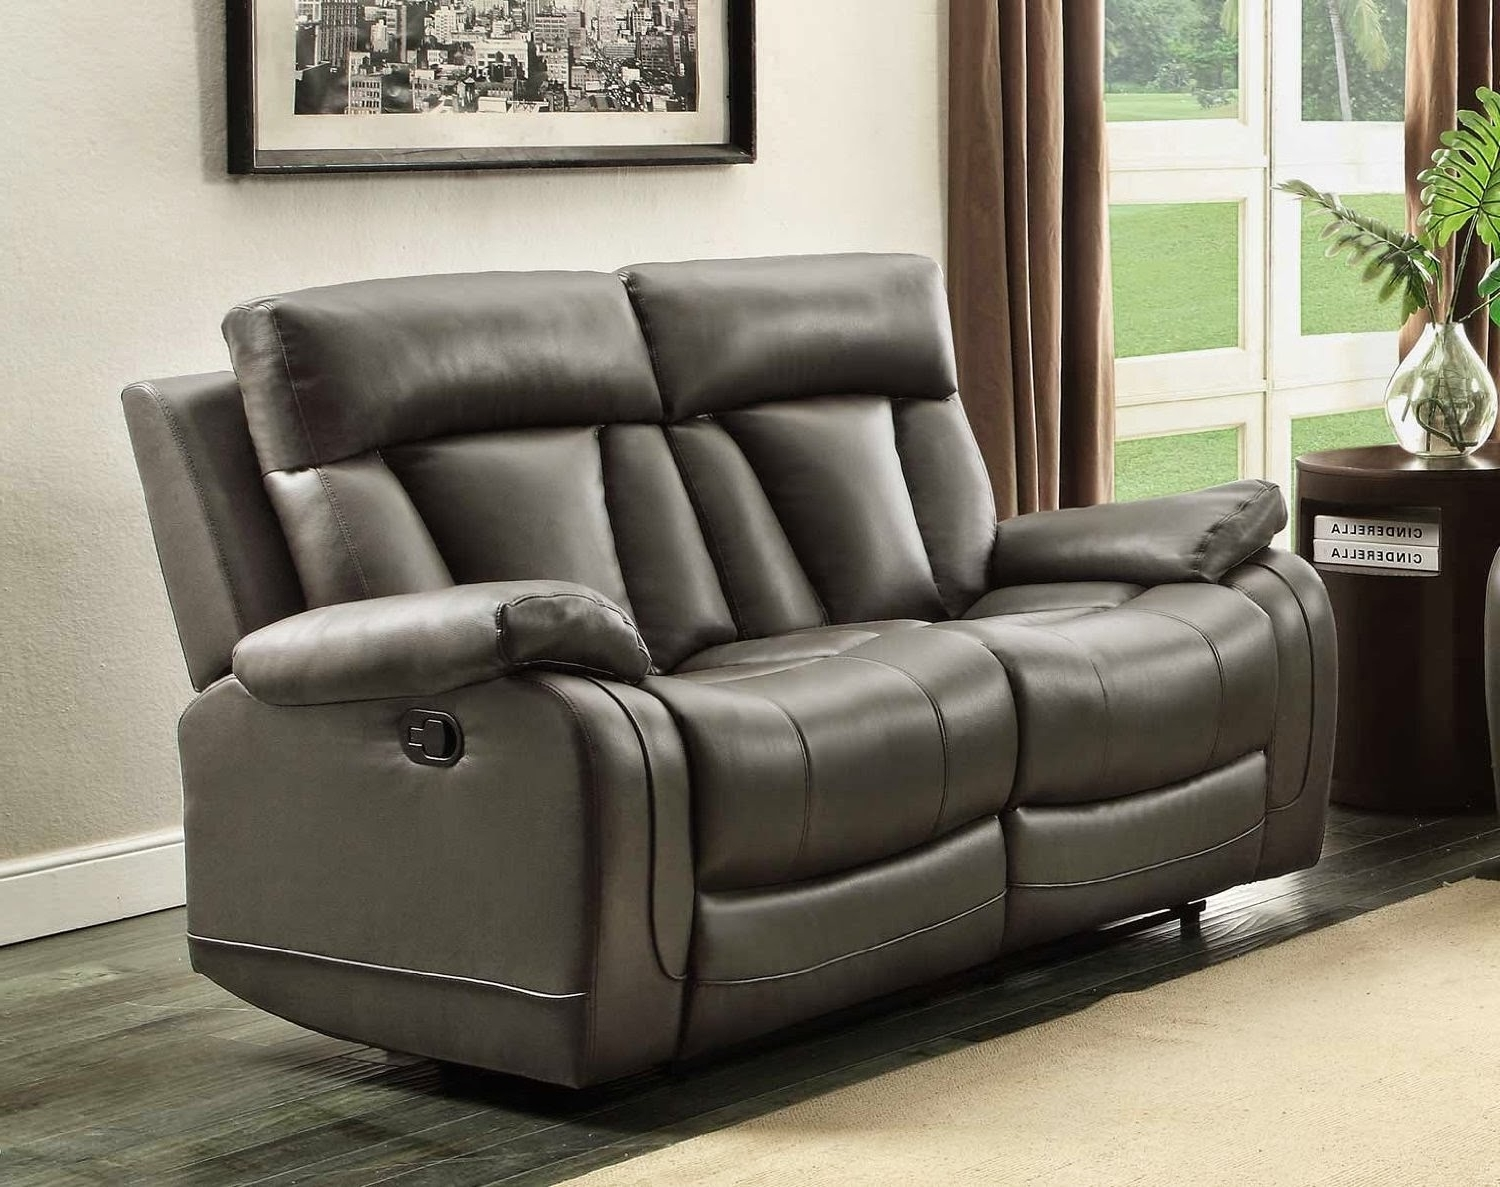 Newest 2 Seater Recliner Leather Sofas Inside Best Reclining Sofa For The Money: Vivaldi 2 Seater Reclining (View 12 of 15)